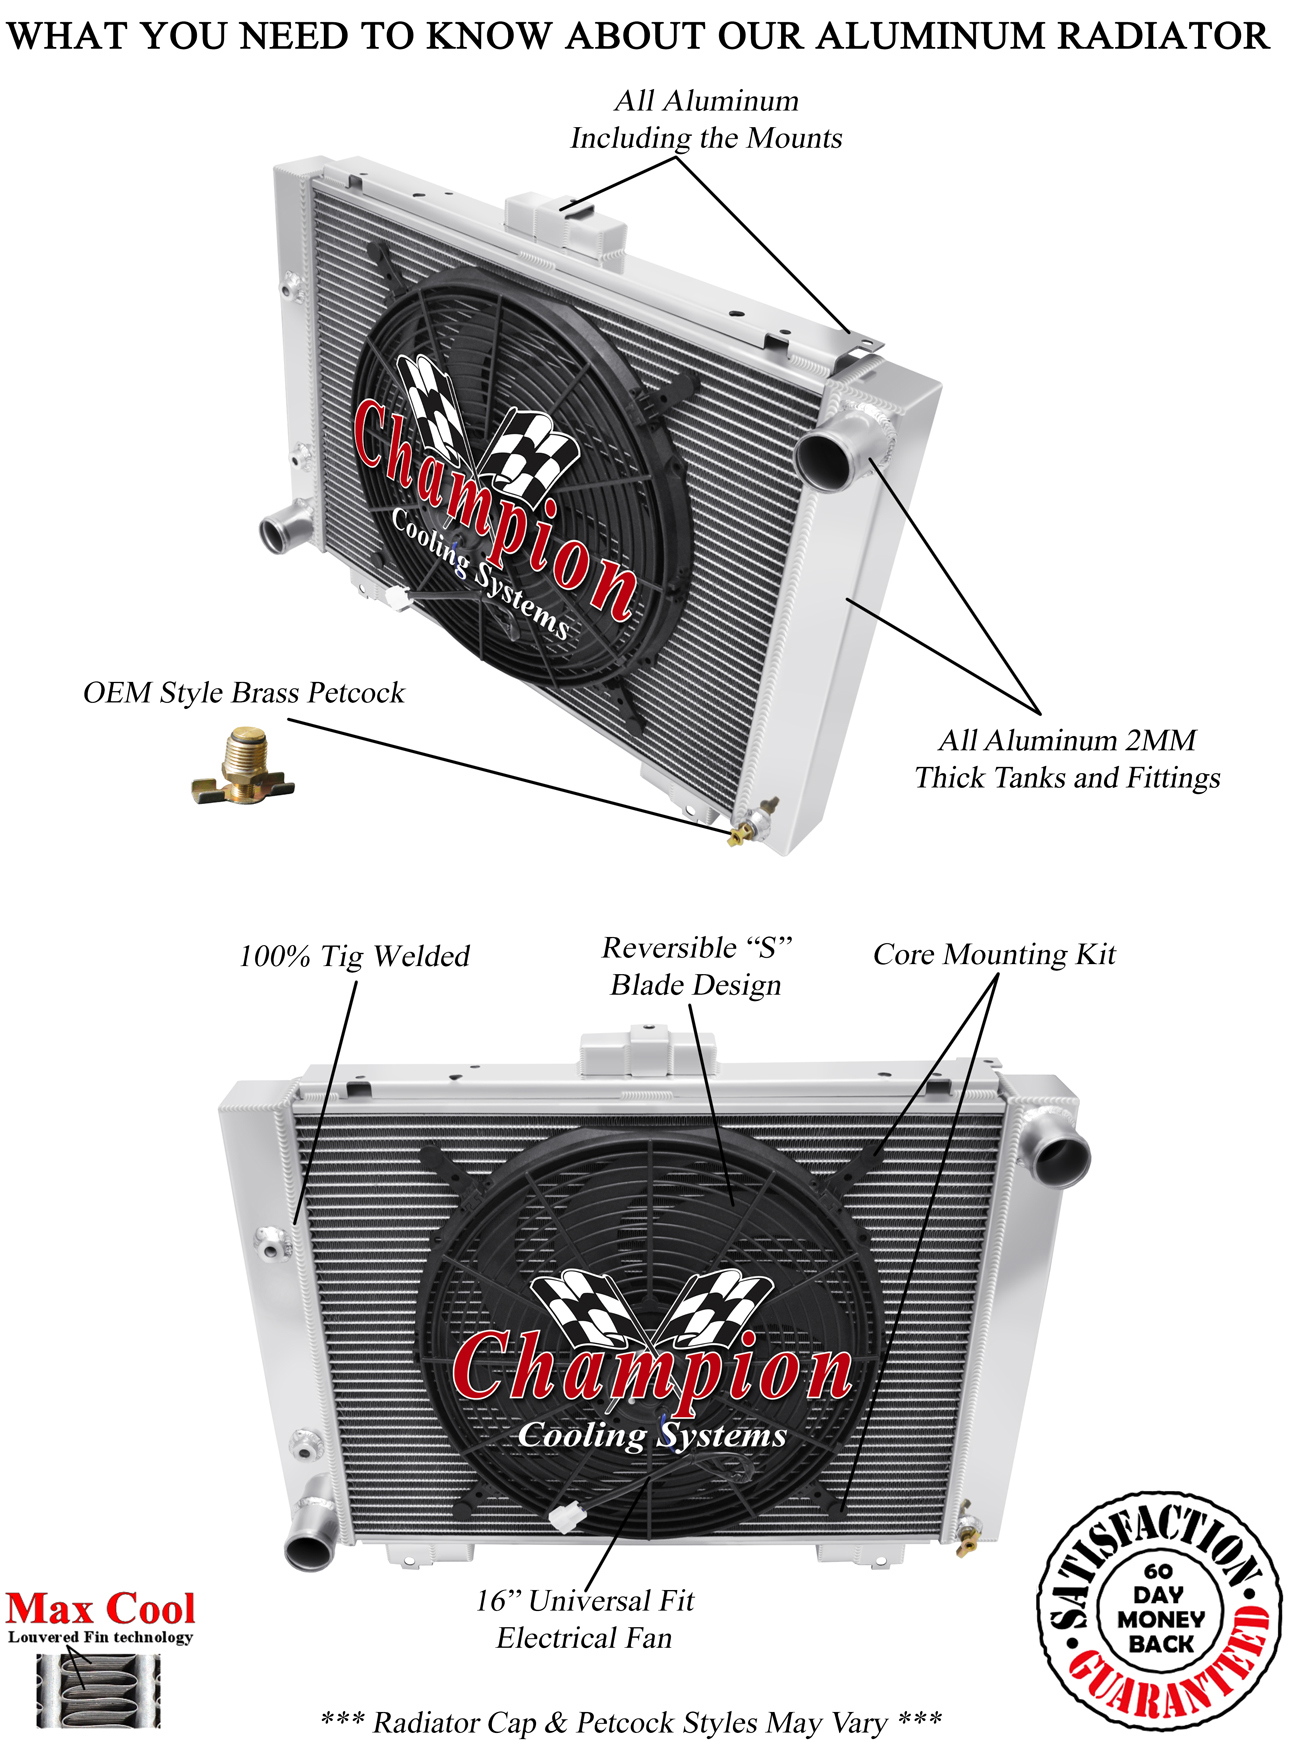 https://www.championcooling.com/photos/Photos%20White/With%20Fans/Combos/64GL/64GL_16infan.jpg